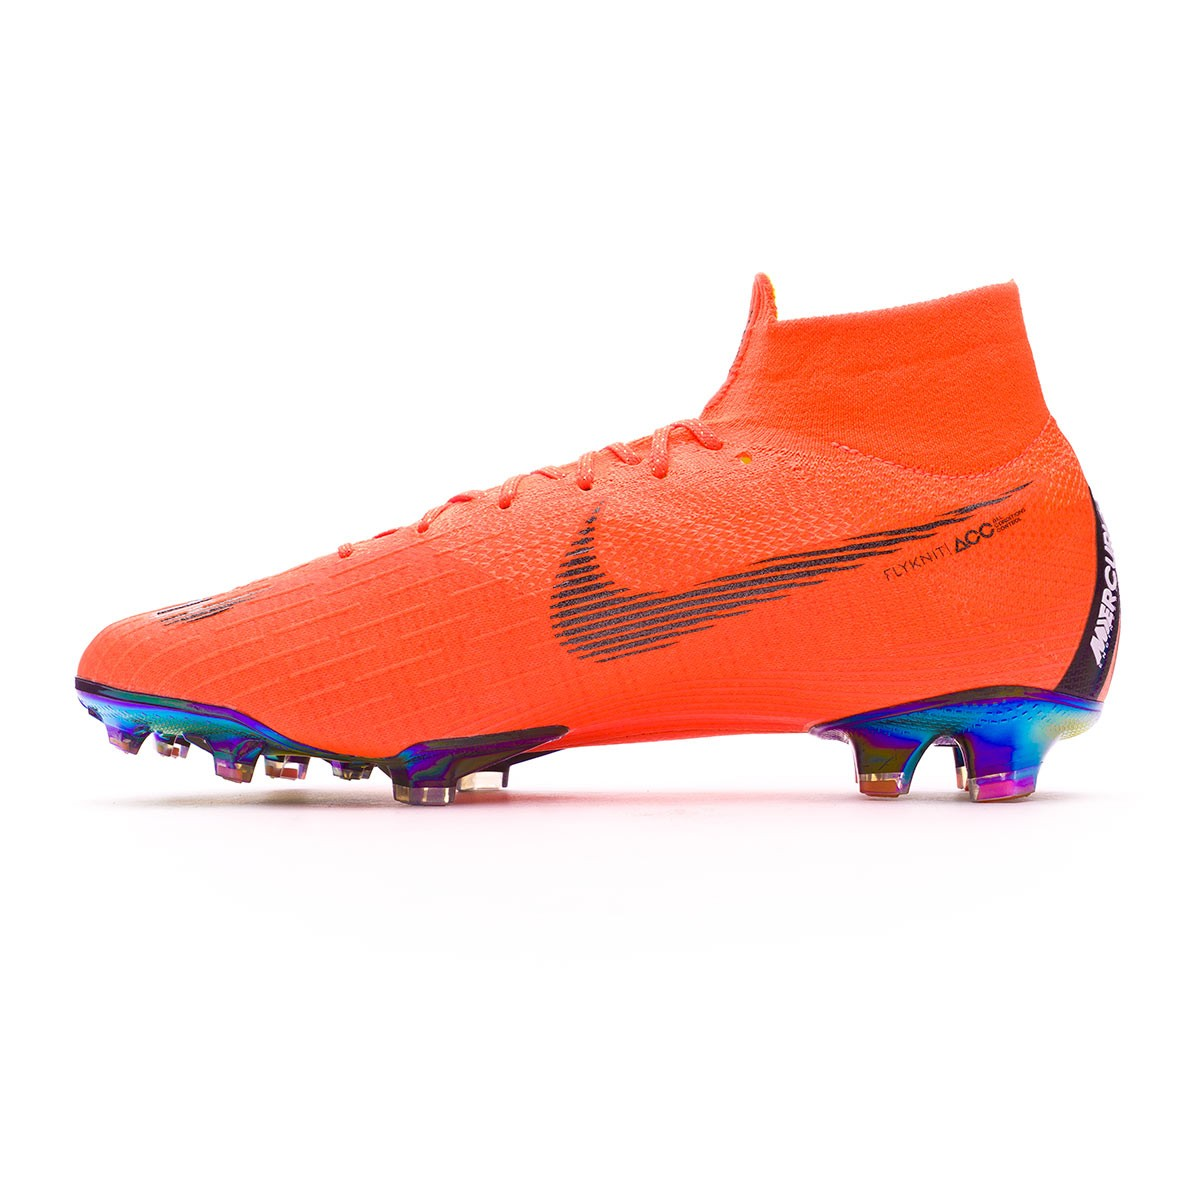 2fbdbc8a2fc2 Football Boots Nike Mercurial Superfly VI Elite FG Total orange-Black-Volt  - Football store Fútbol Emotion